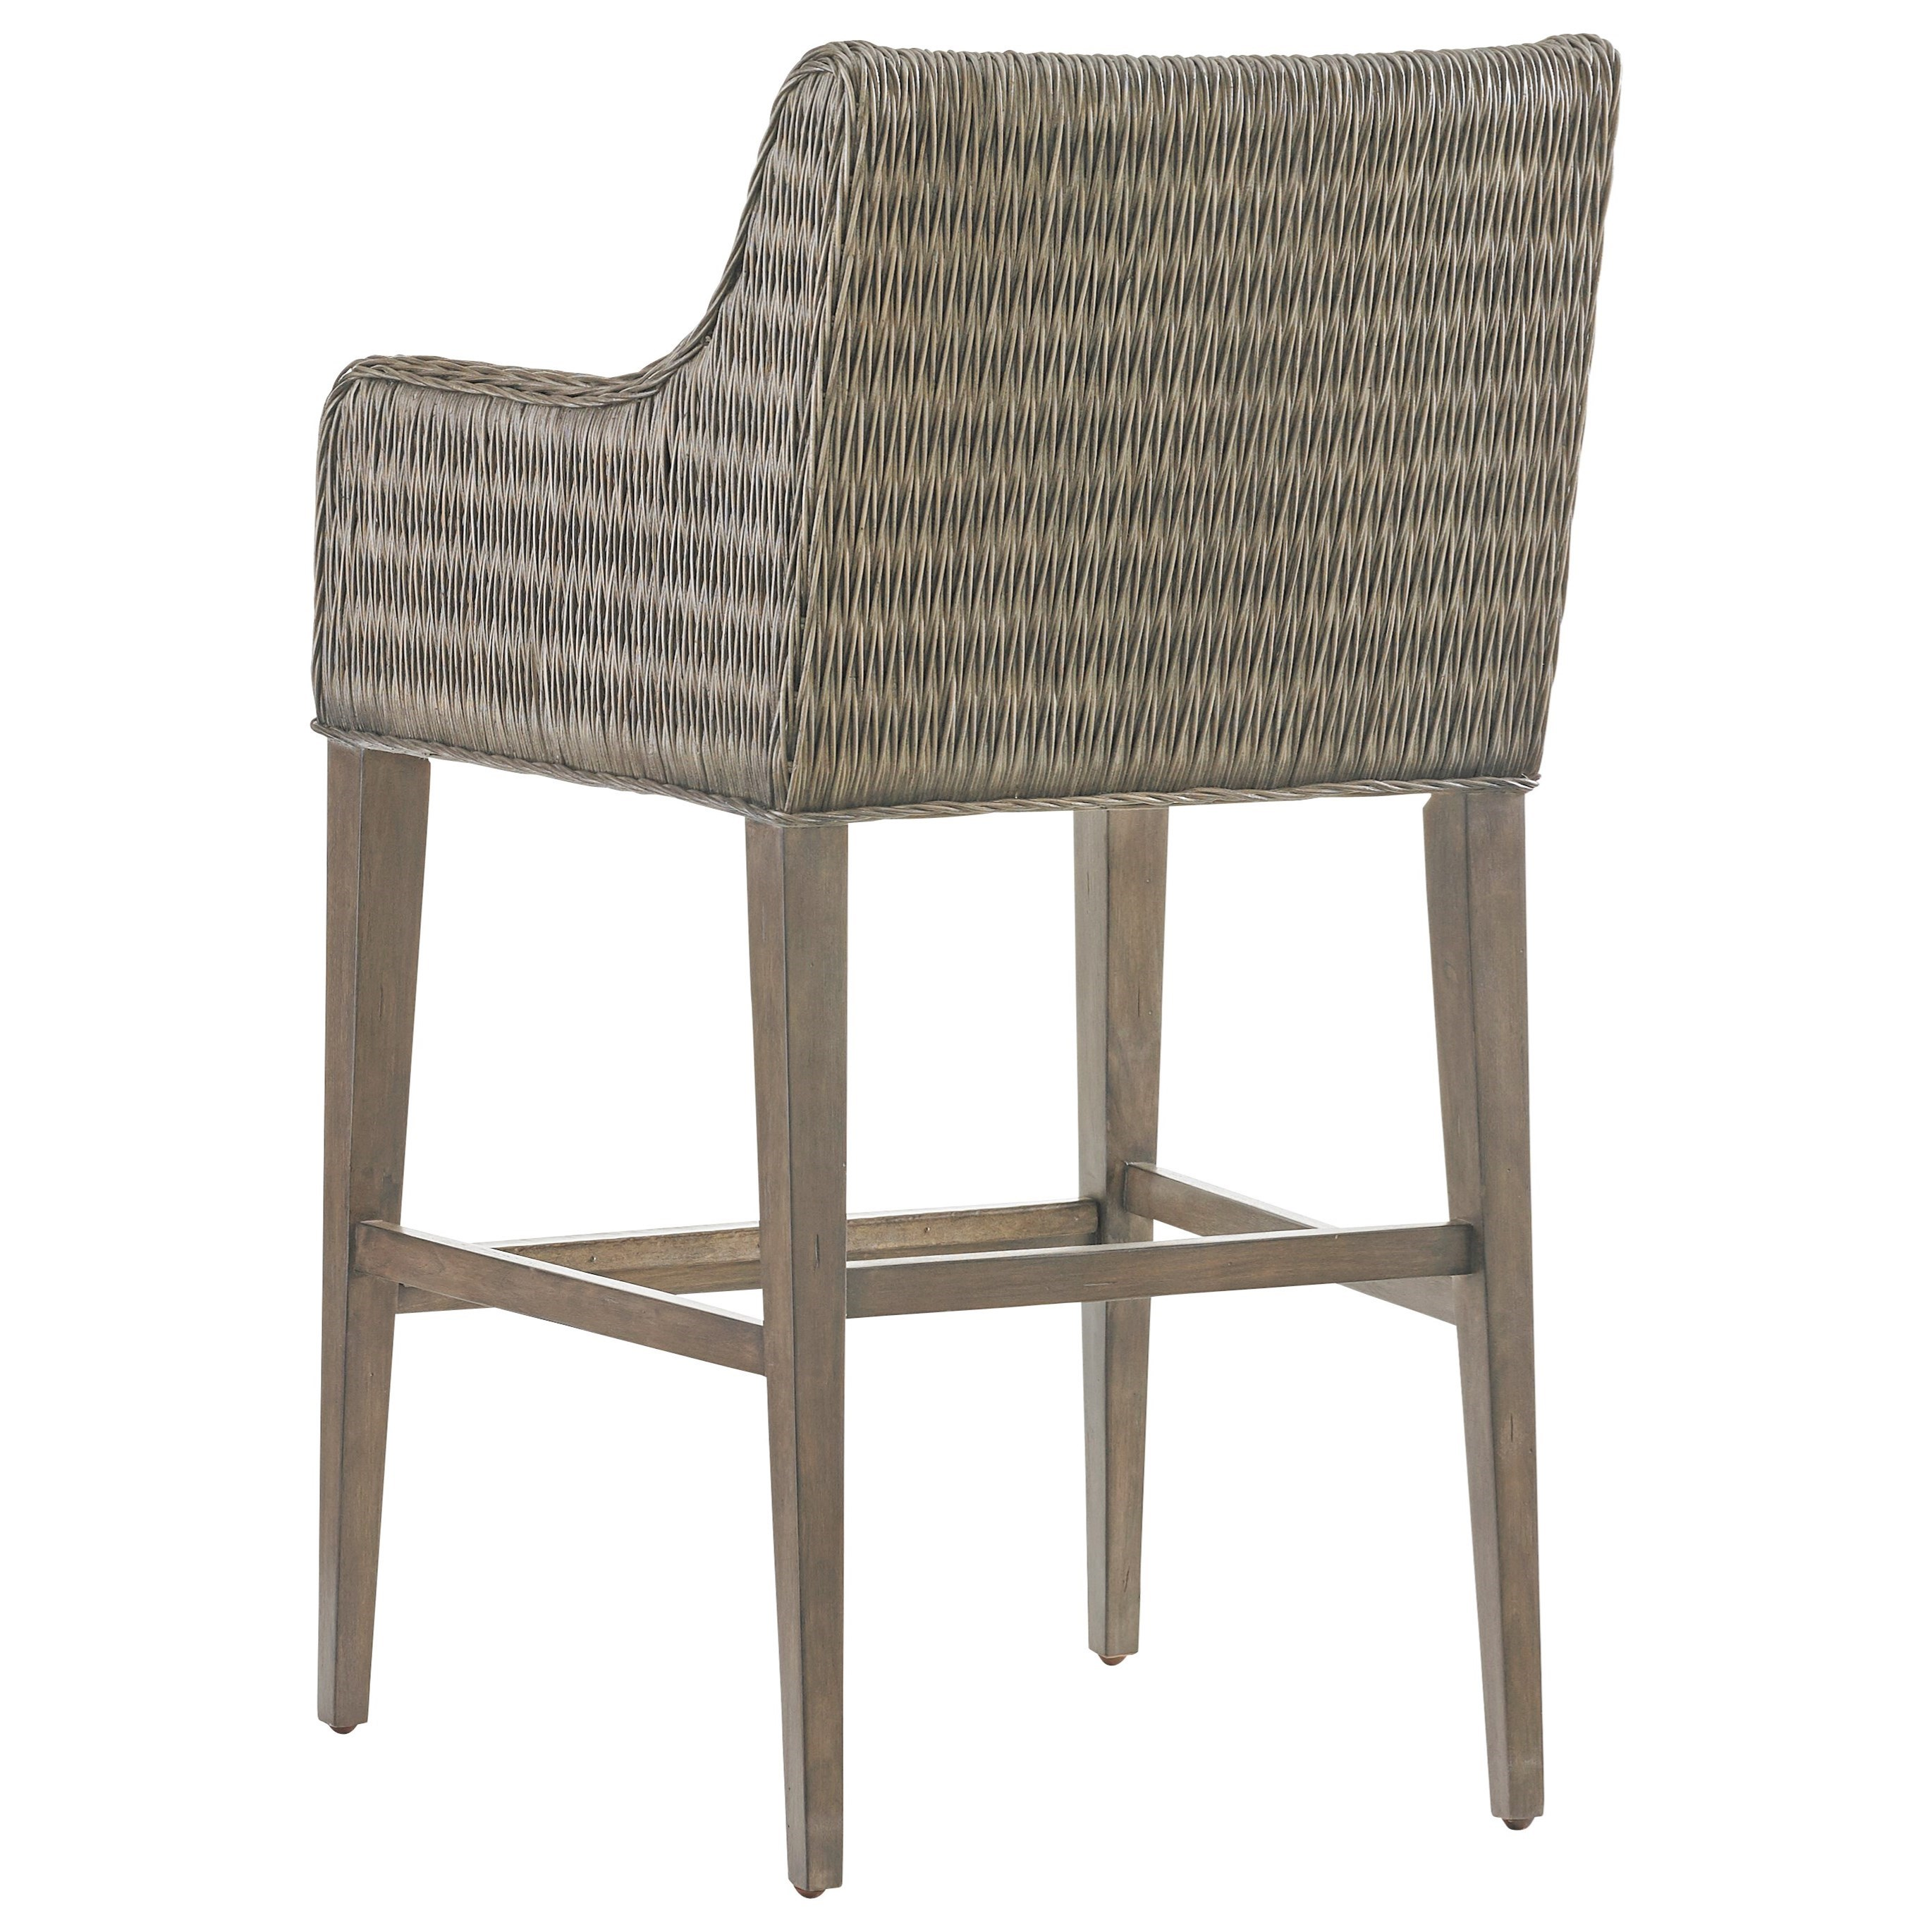 Tommy Bahama Home Cypress Point Turner Woven Rattan Bar